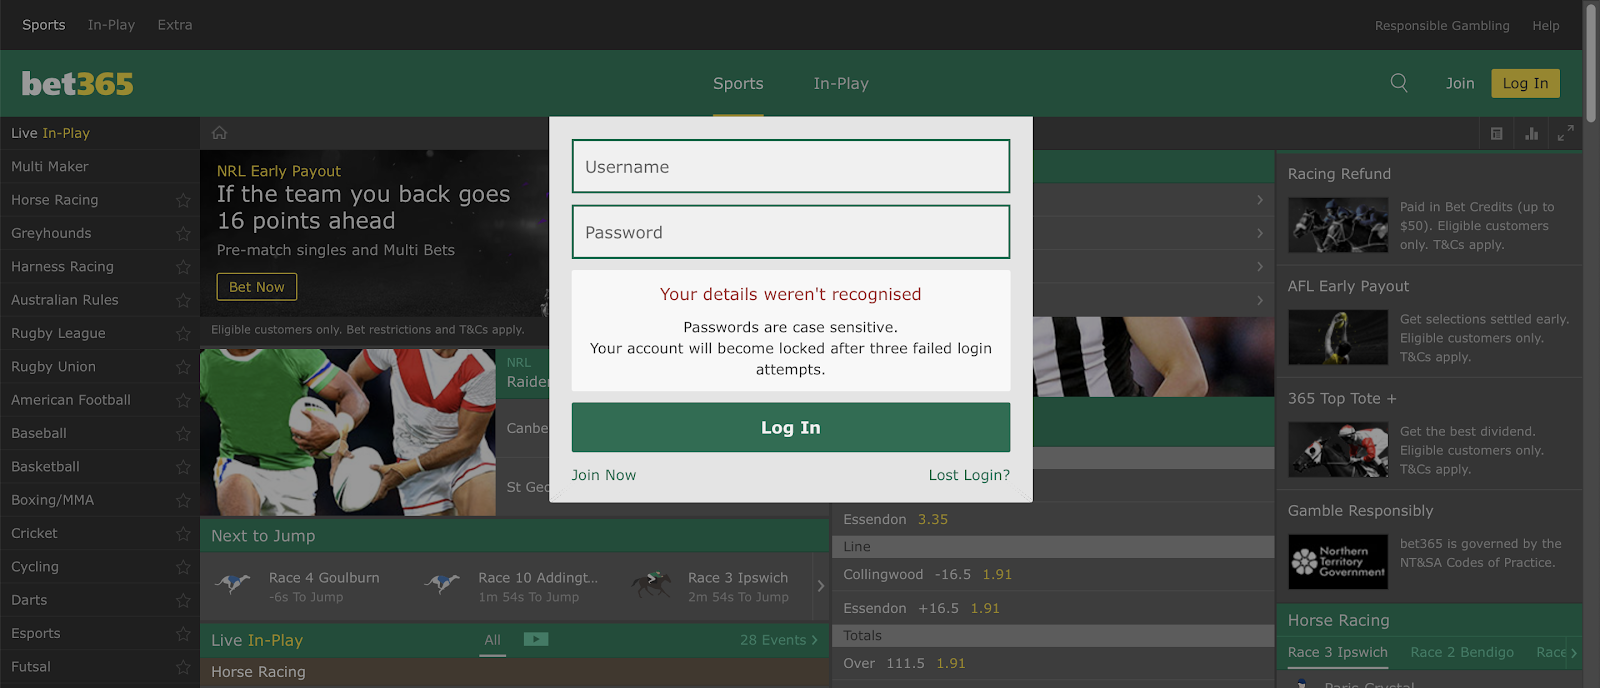 Bet365 Deleted Account